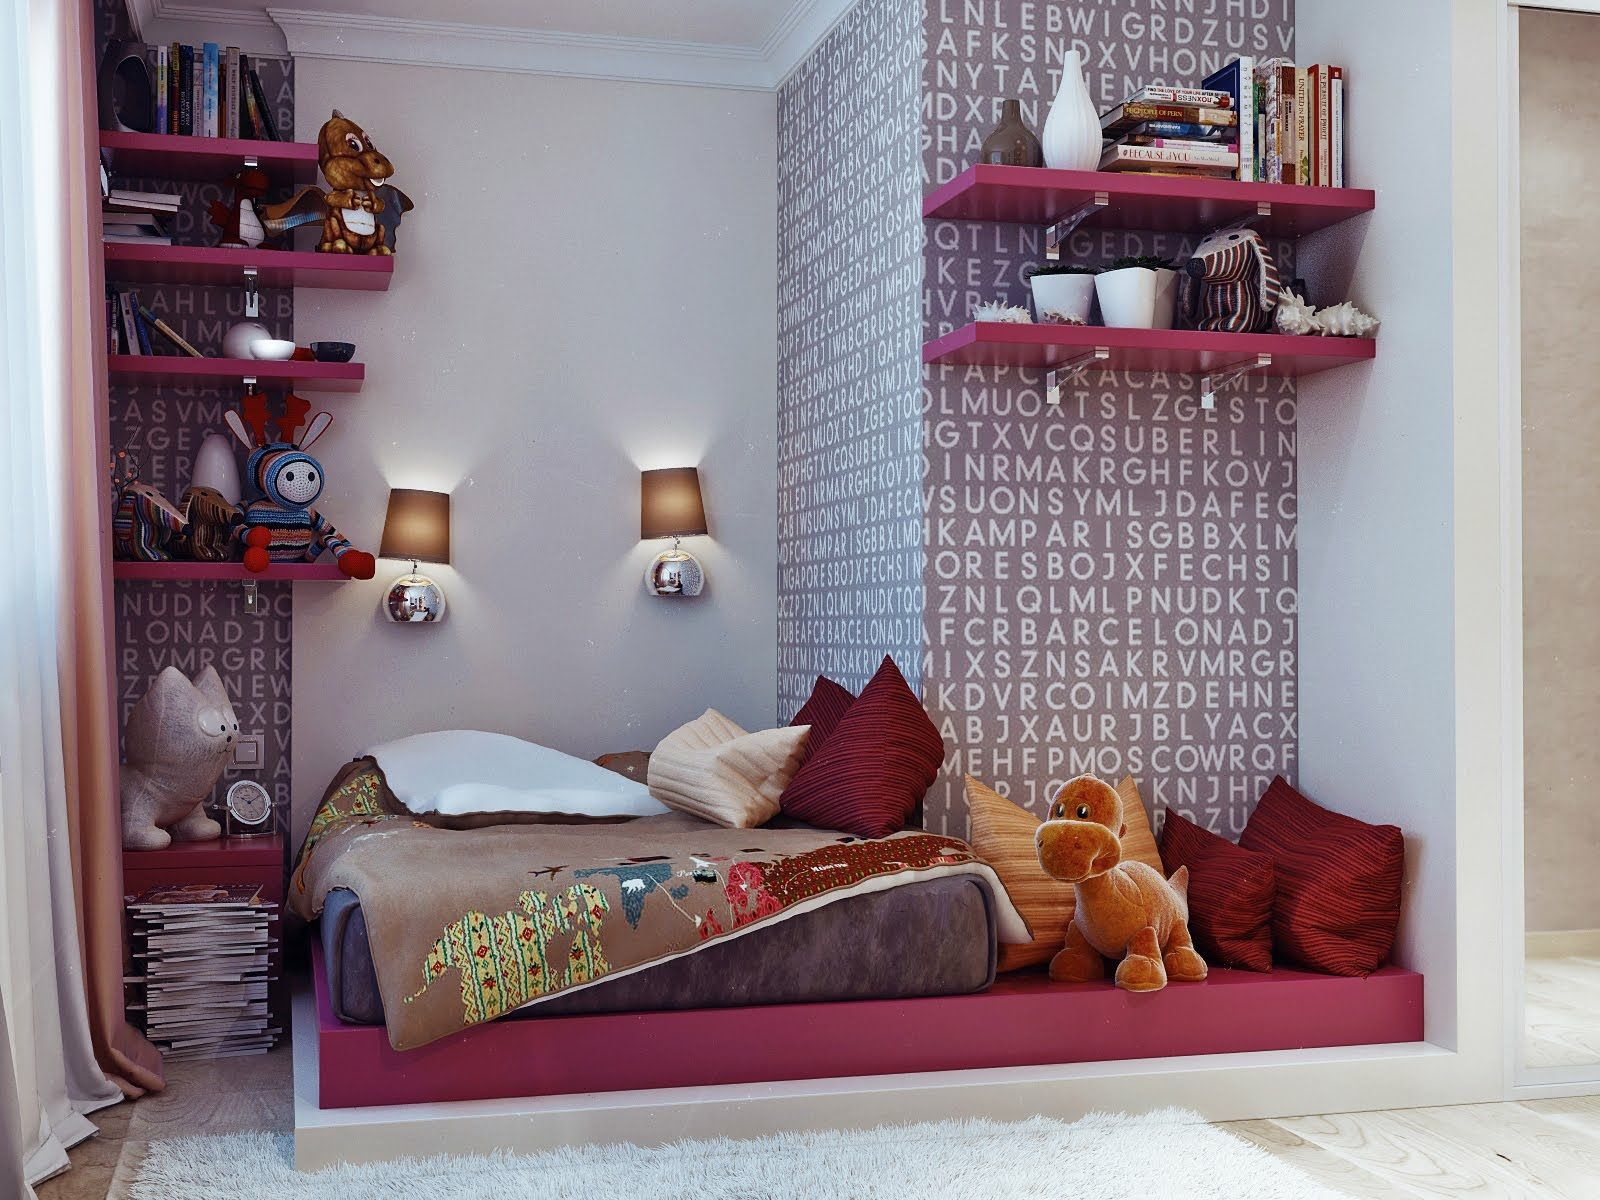 Bedrooms designs for teenagers - If You Are Thinking To Remolding Your Kids Bedroom Then You Have Decorate Kids Bedroom With Full Of Fresh Ideas Teenagers Always Love W